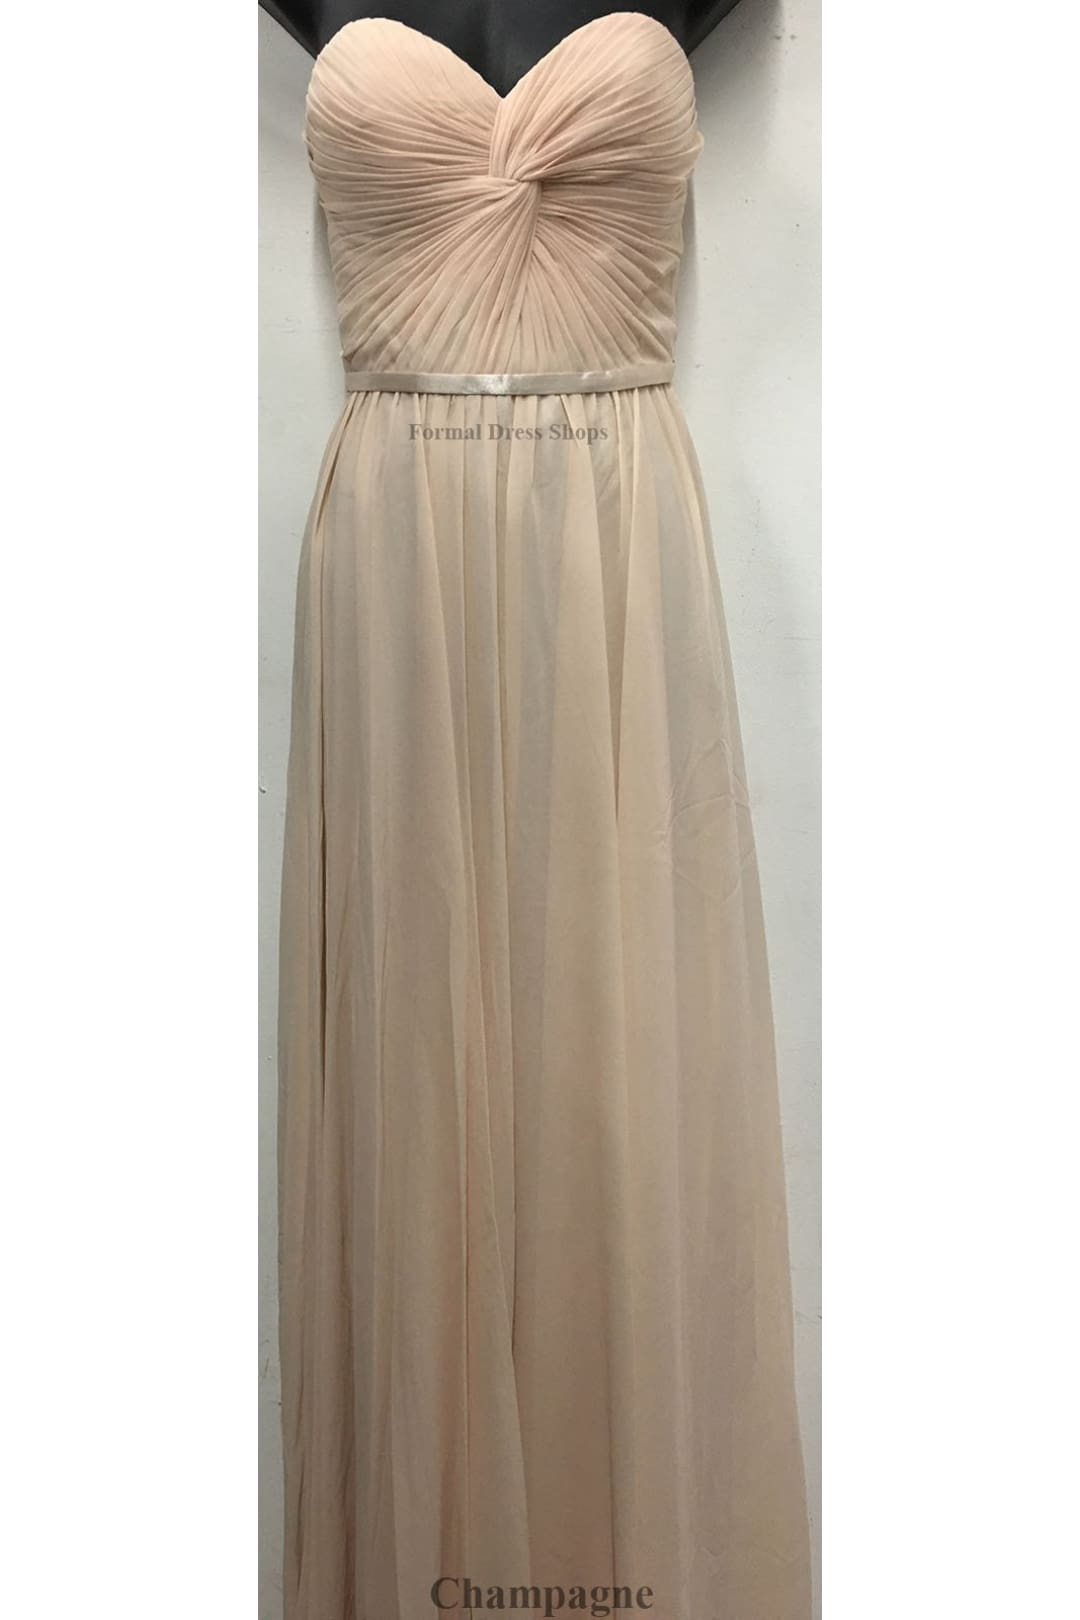 Lace up Back Bridesmaids Dress - Champagne / 6